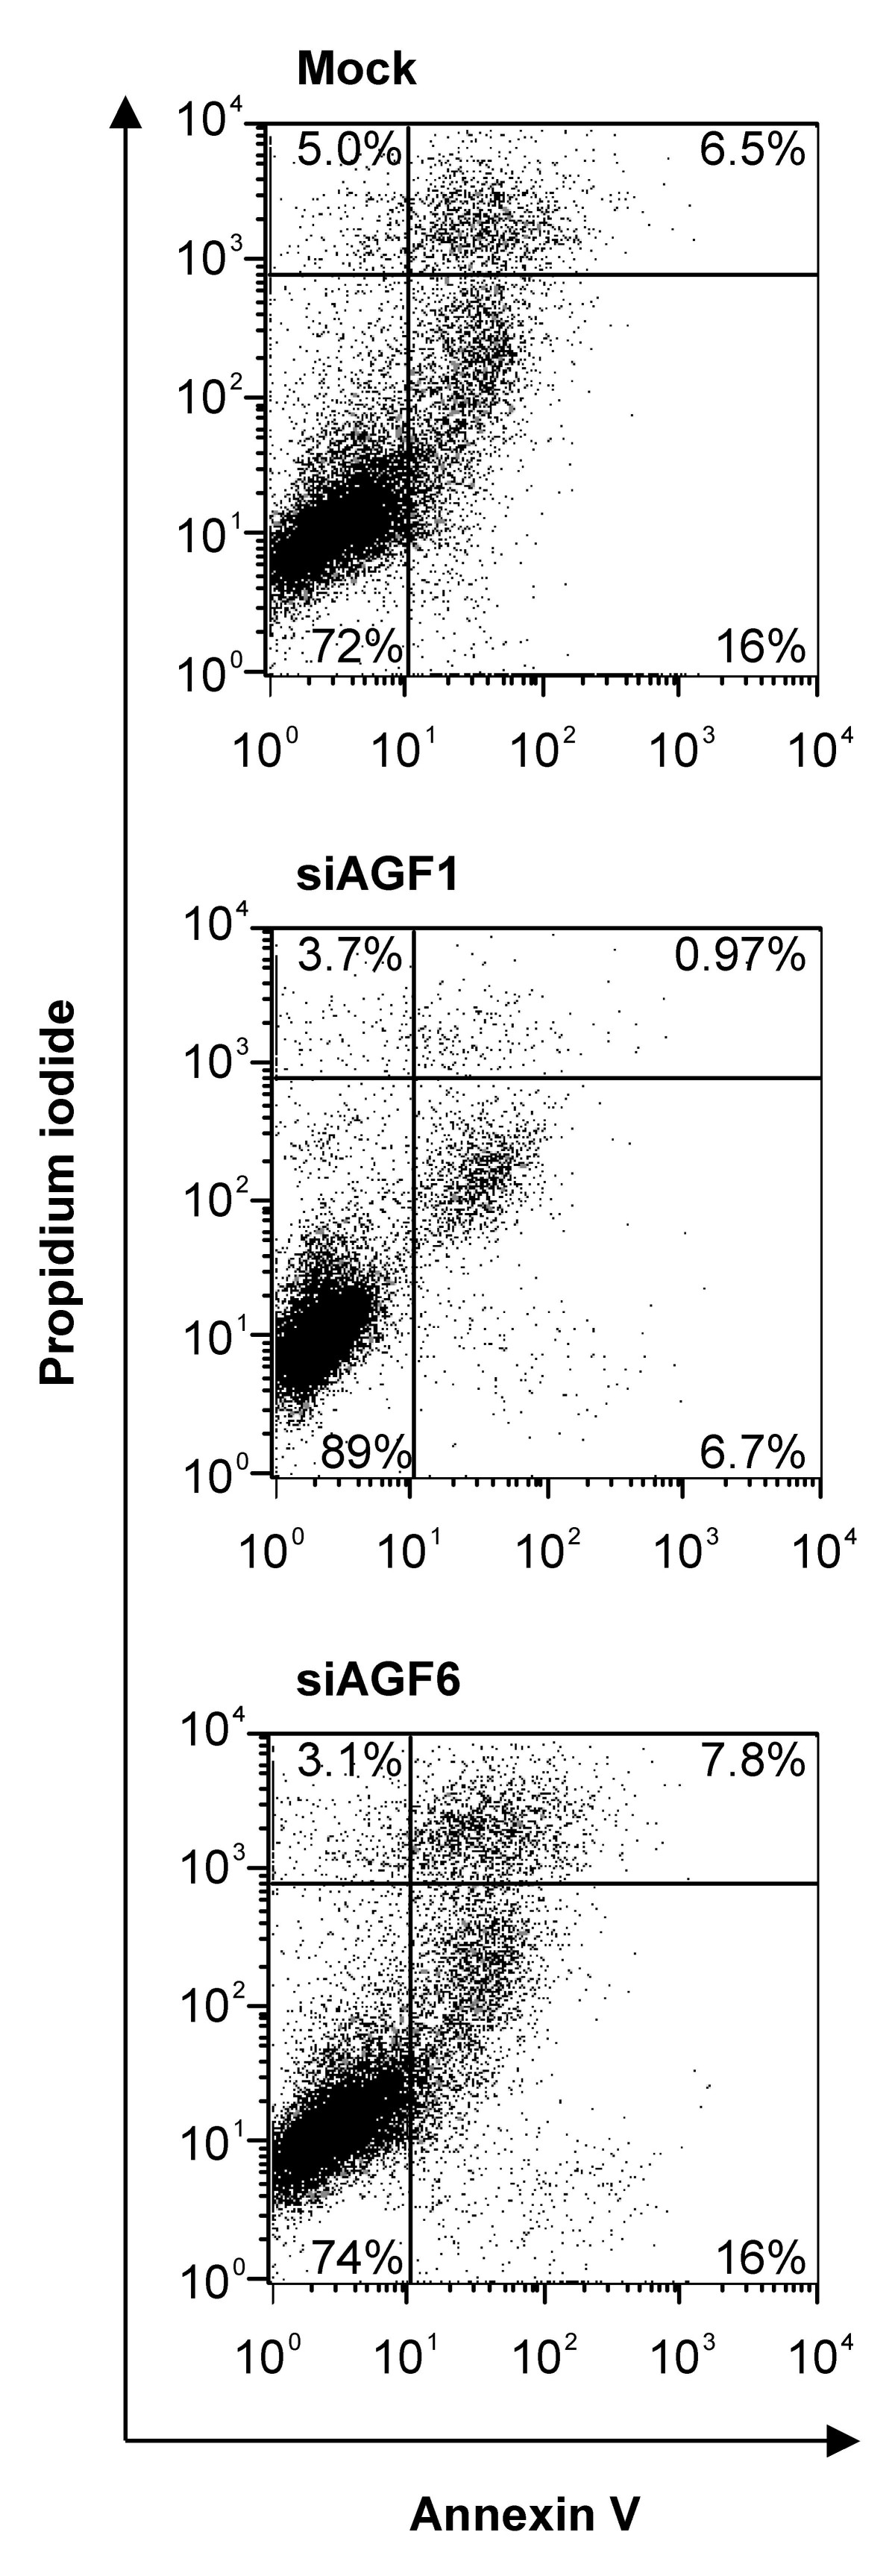 https://static-content.springer.com/image/art%3A10.1186%2F1471-2407-4-44/MediaObjects/12885_2004_Article_134_Fig5_HTML.jpg